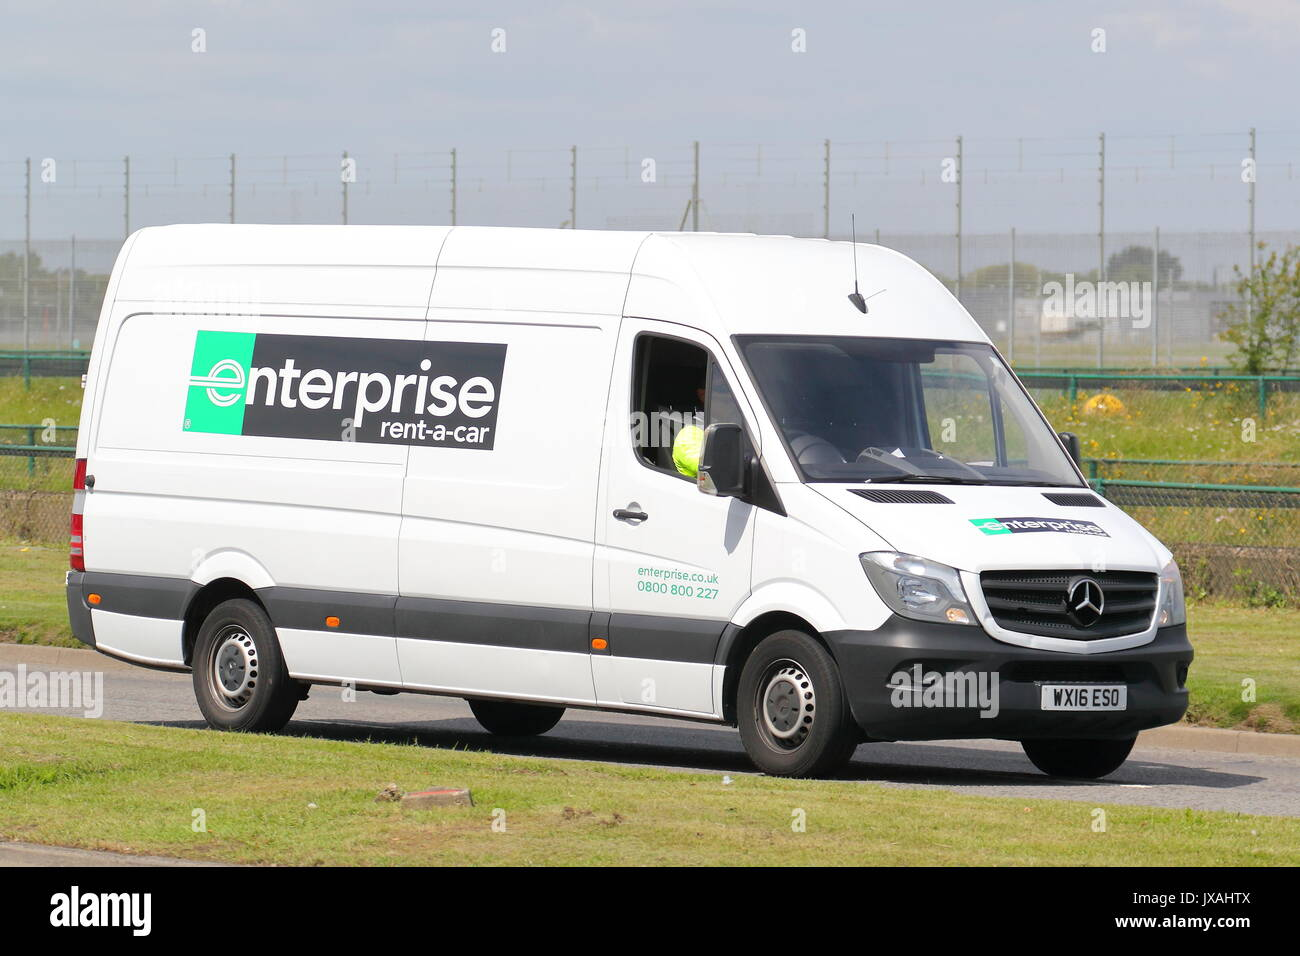 331fe372be Rent A Van Stock Photos   Rent A Van Stock Images - Alamy